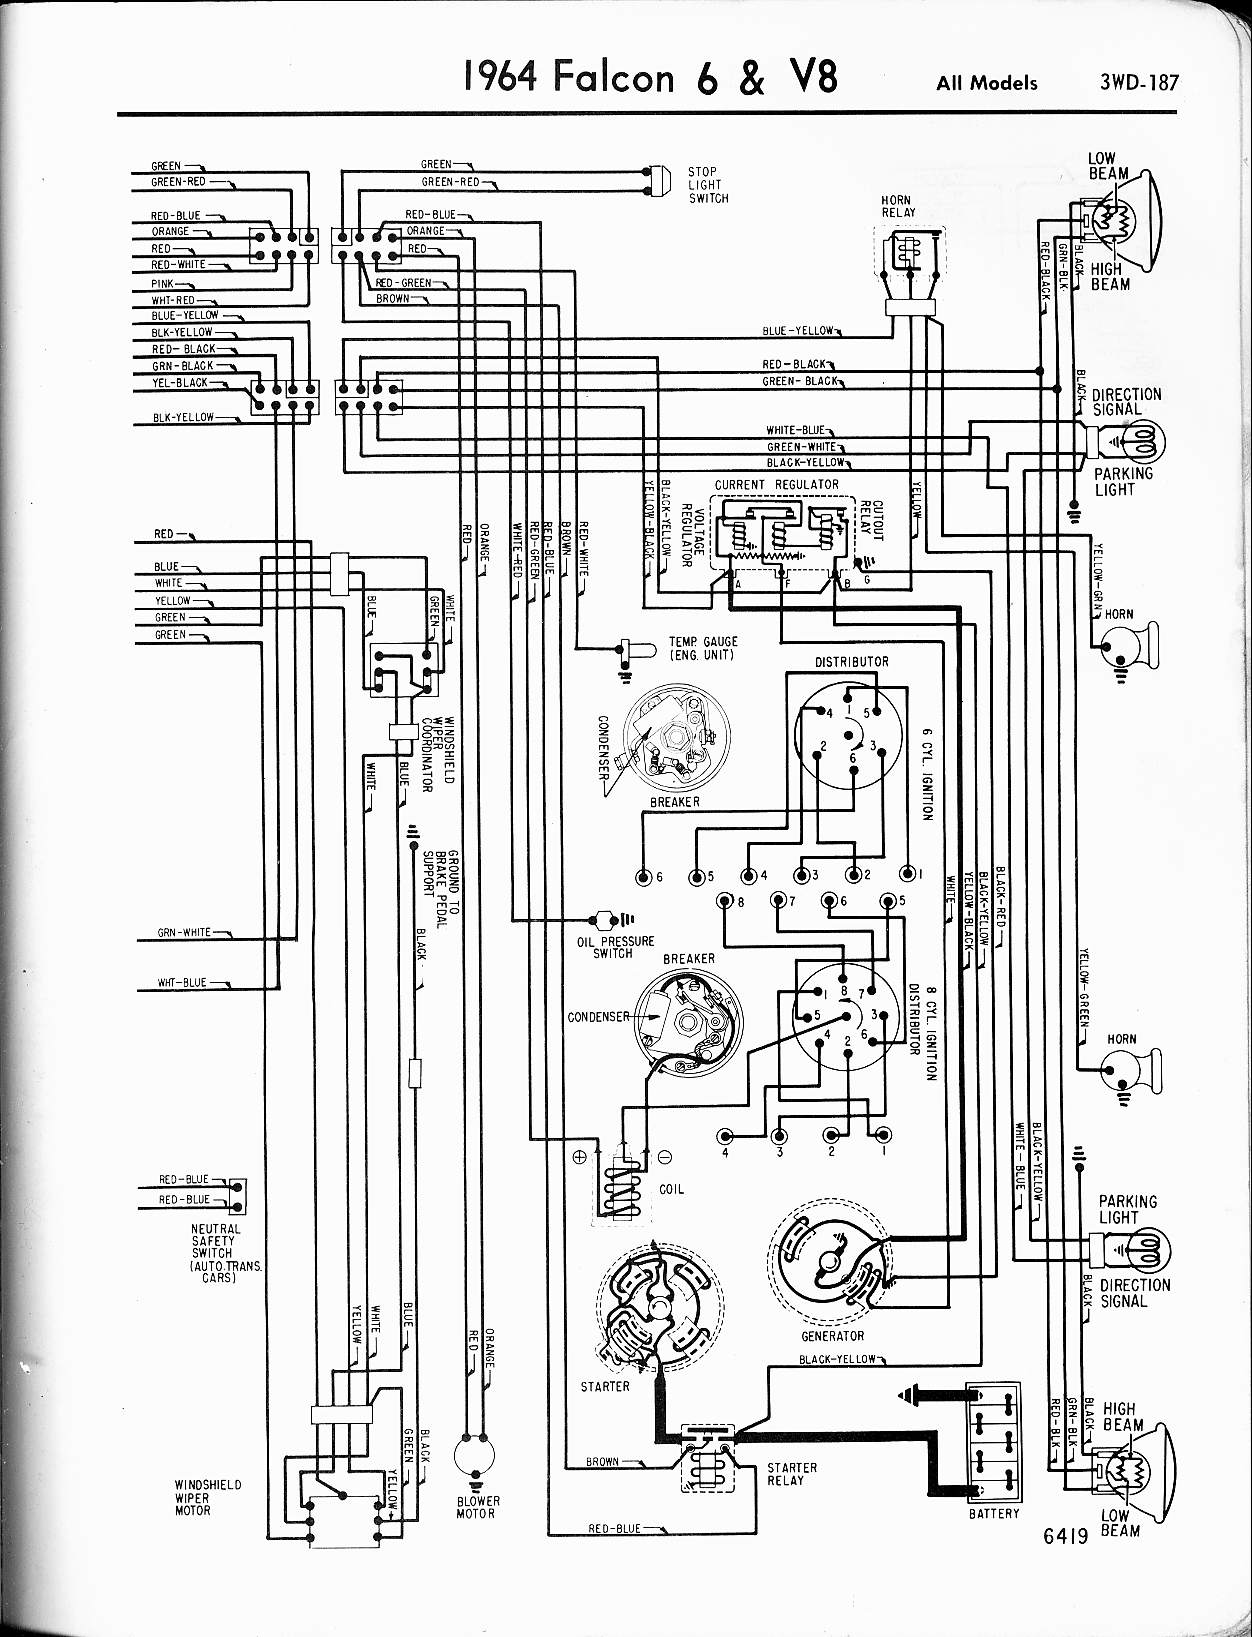 MWire5765 187 57 65 ford wiring diagrams ford falcon wiring diagram at fashall.co